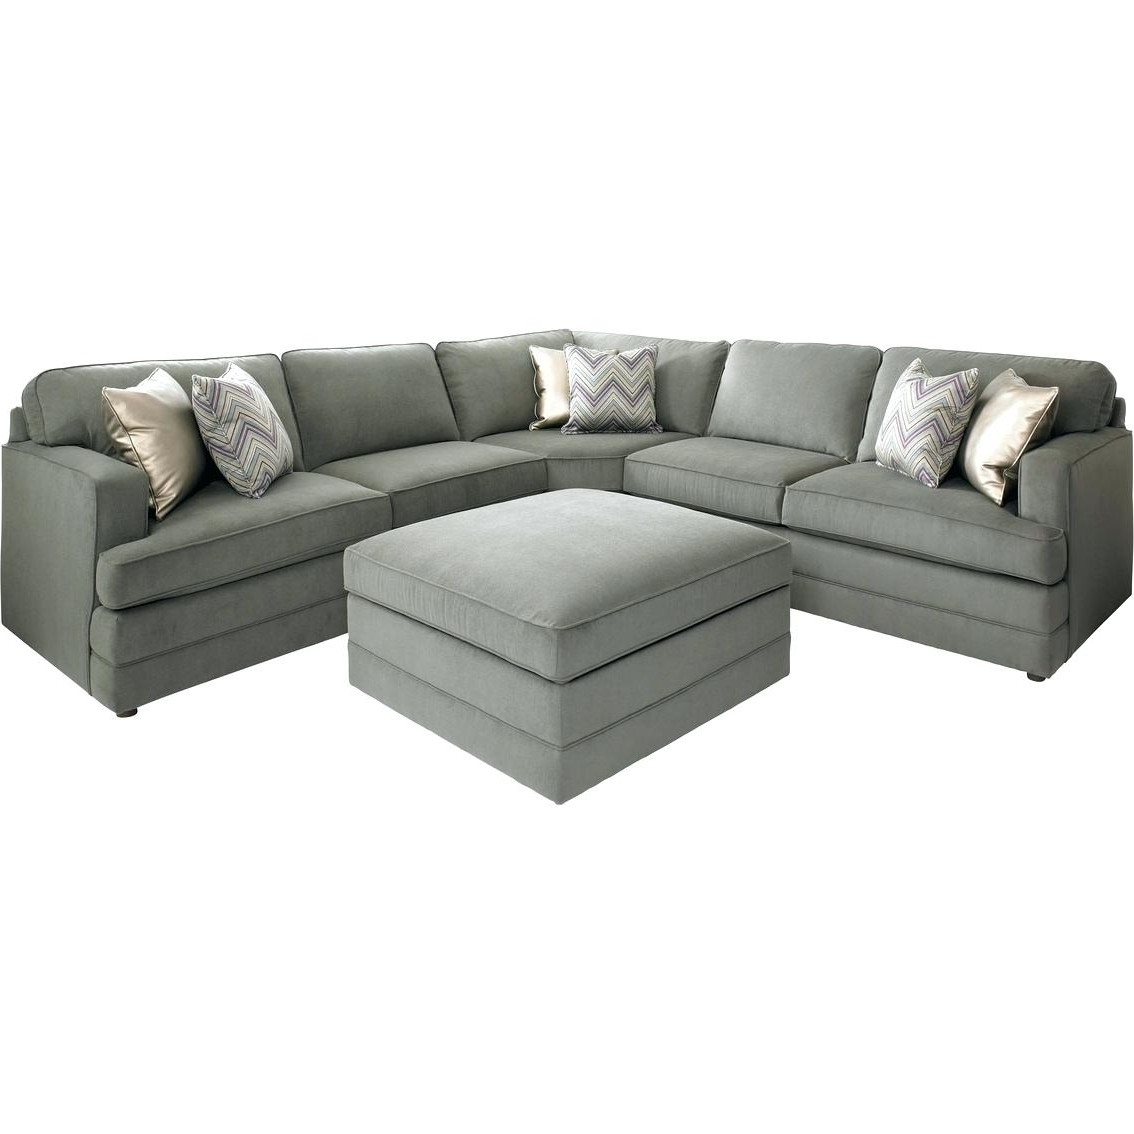 Trendy Sectional Sofa Sale Sa Couches For Near Me Liquidation Toronto In London Ontario Sectional Sofas (View 16 of 20)